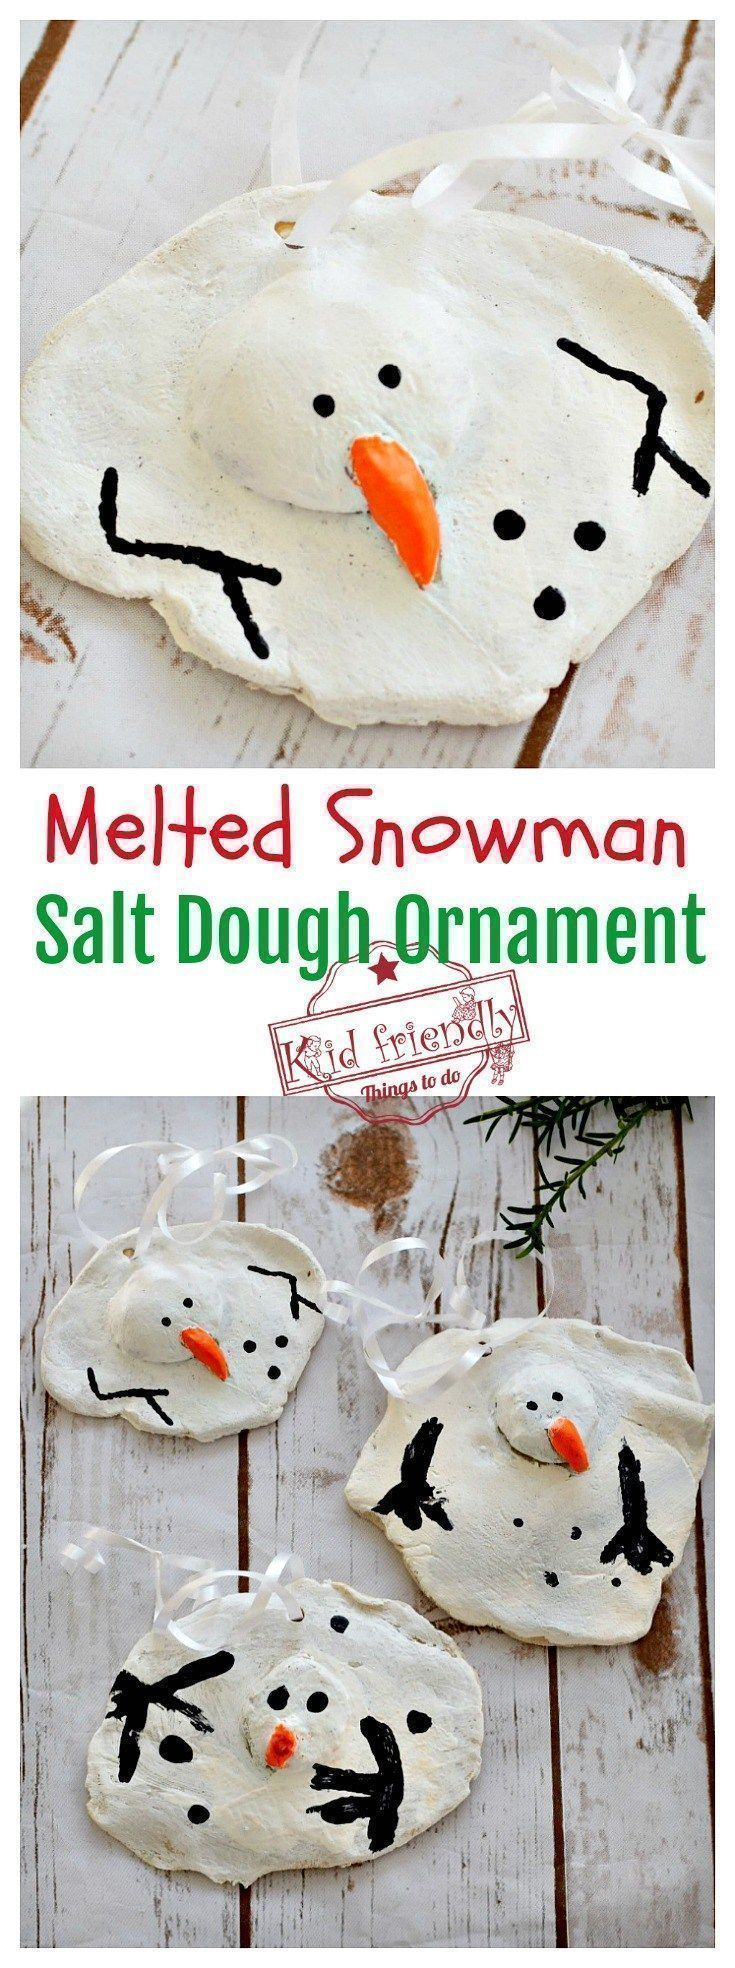 A Diy Melted Snowman And Candy Cane Salt Dough Ornament Idea And Recipe For Christmas With Kids Salt Dough Christmas Ornaments Christmas Ornaments Homemade Kids Christmas Ornaments